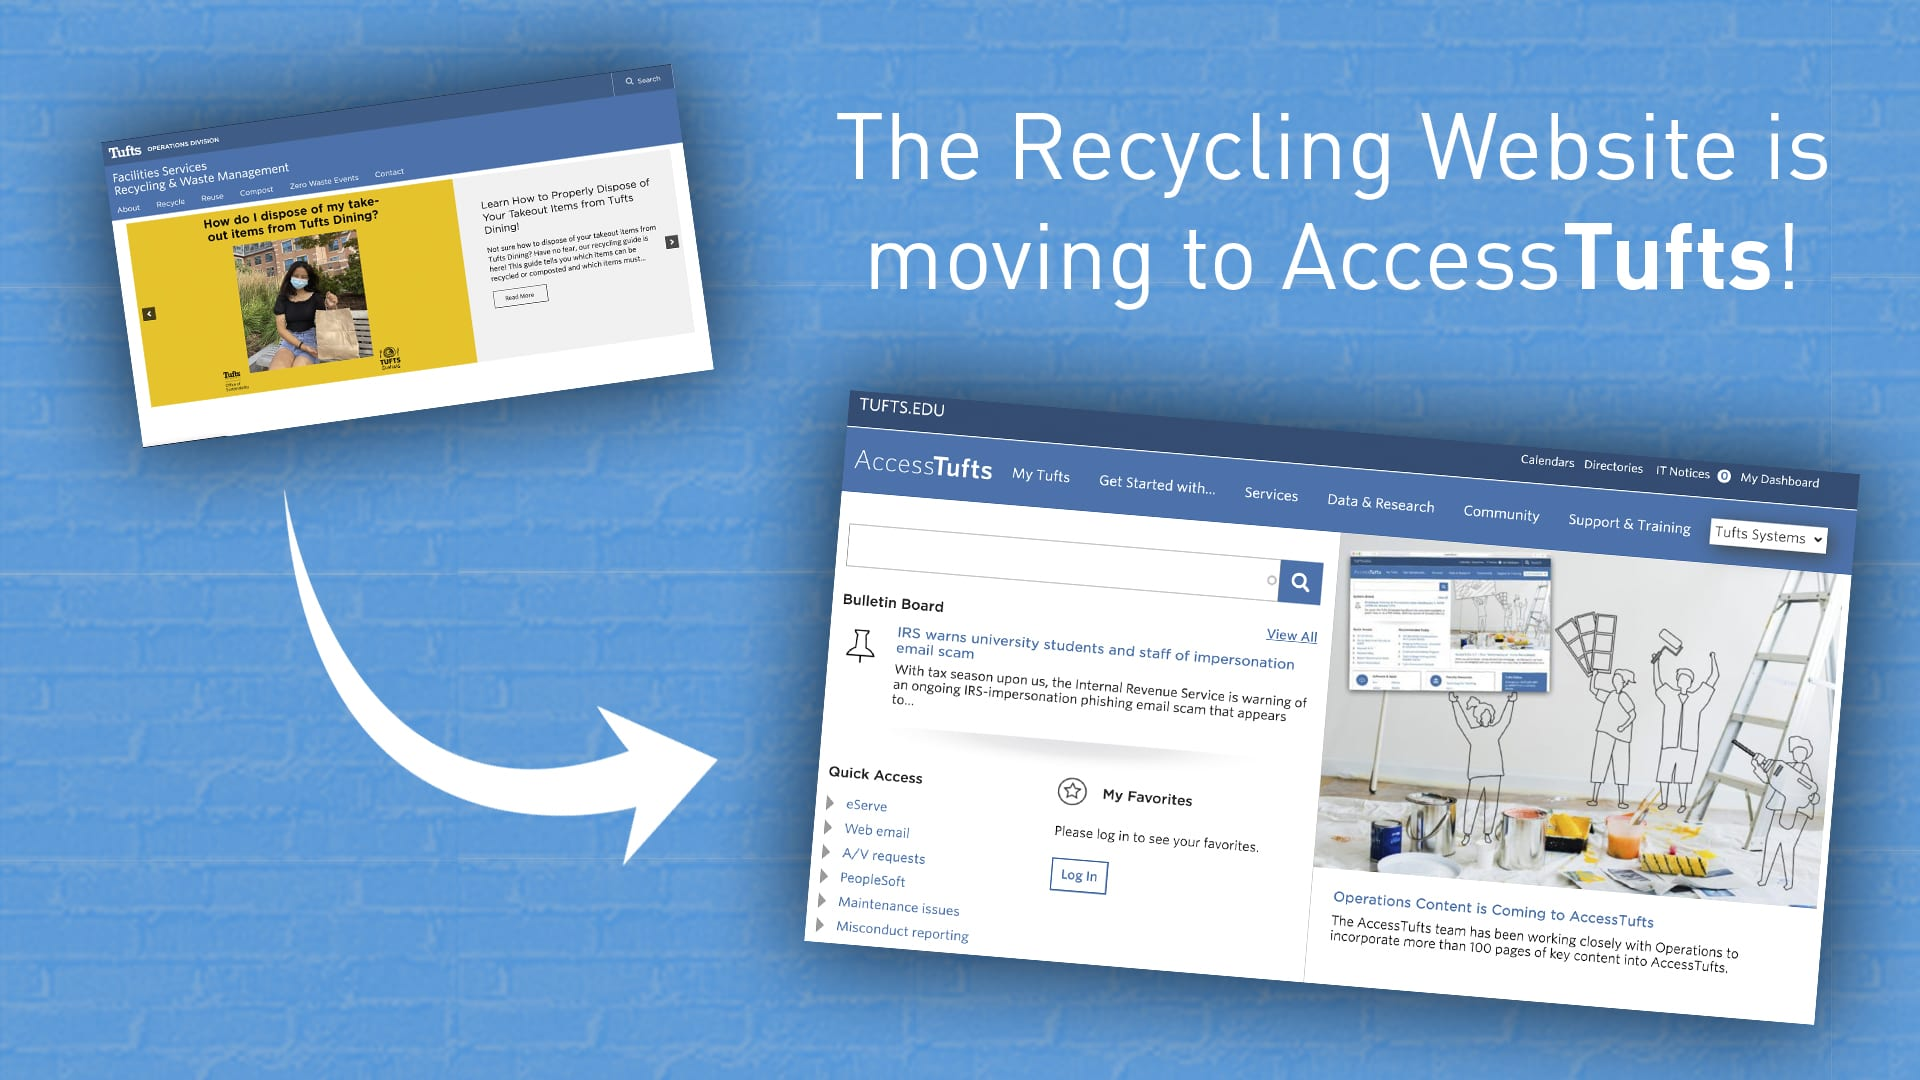 The Recycling Website is moving to AccessTufts!